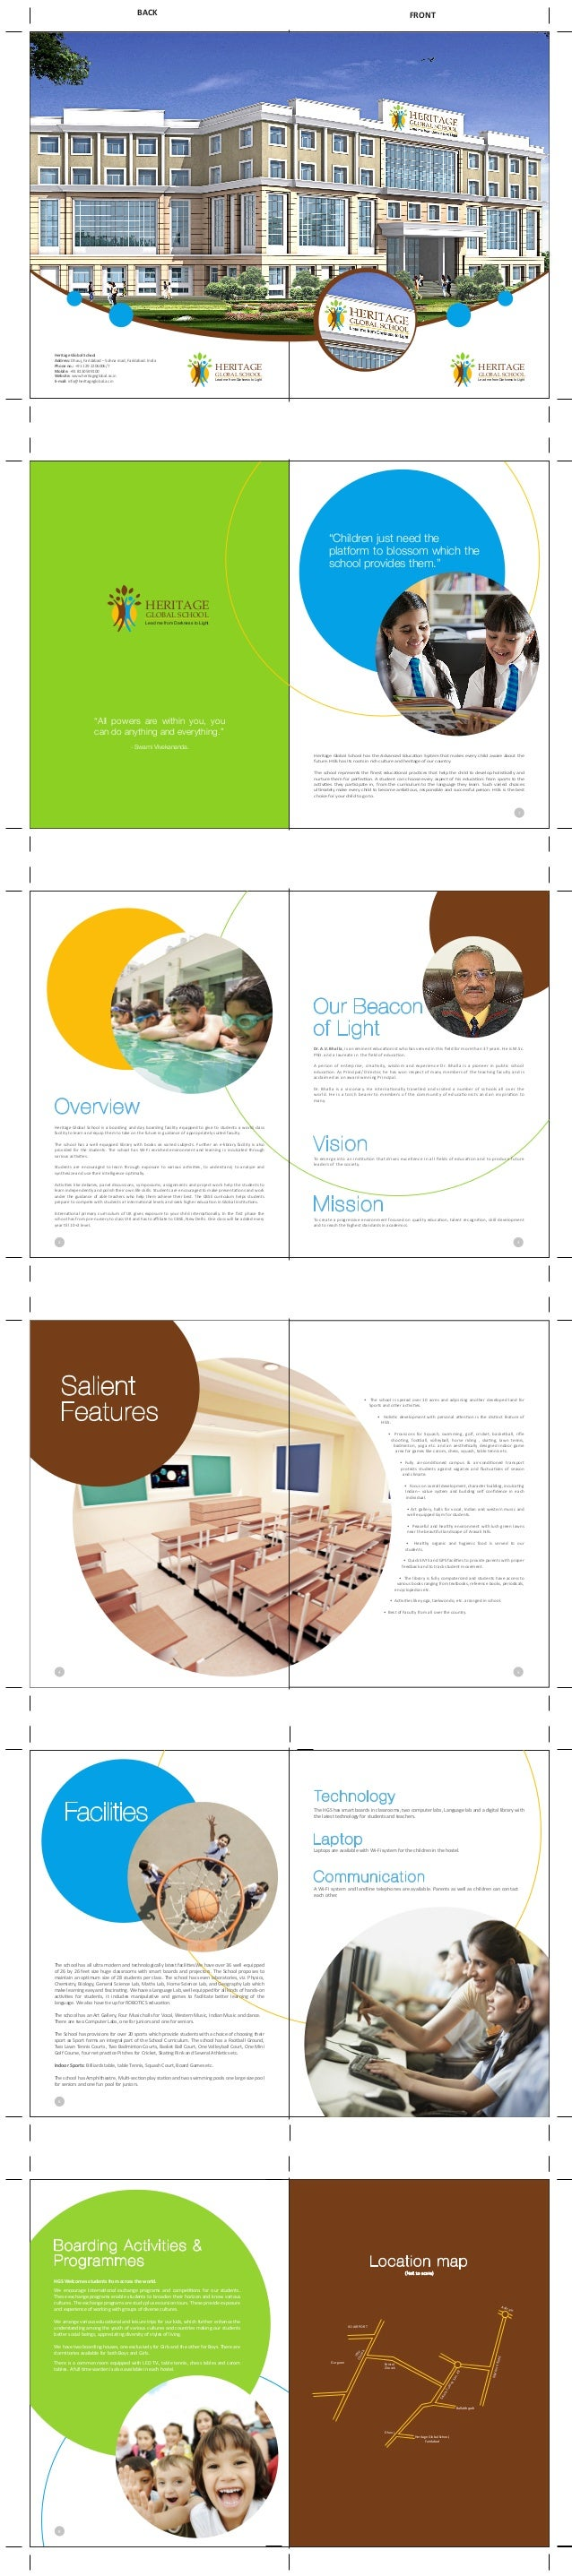 Heritage school brochure